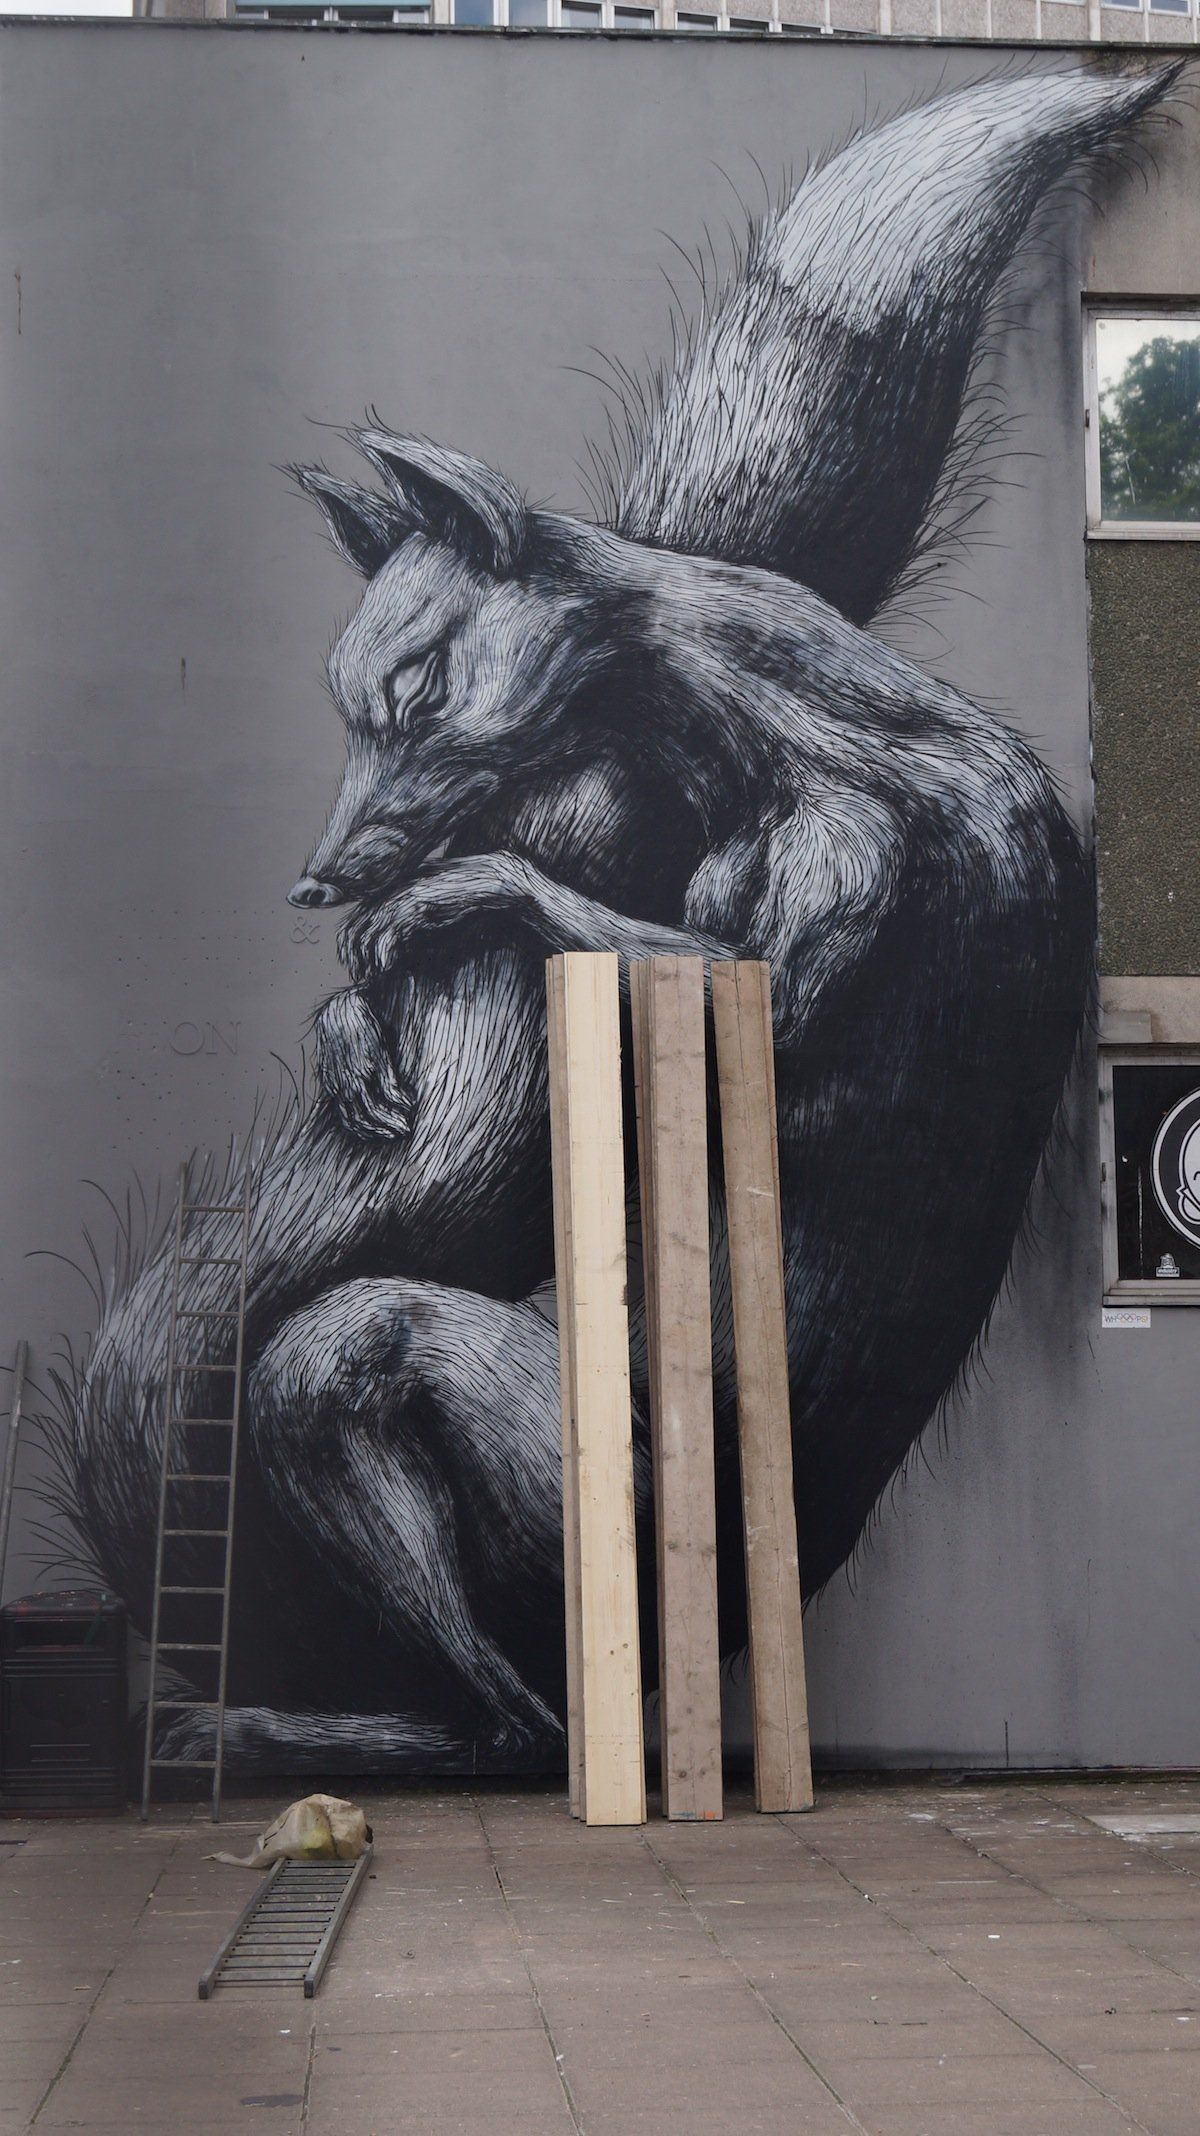 STREET ART UTOPIA » We declare the world as our canvasBy ROA in Bristol, UK » STREET ART UTOPIA